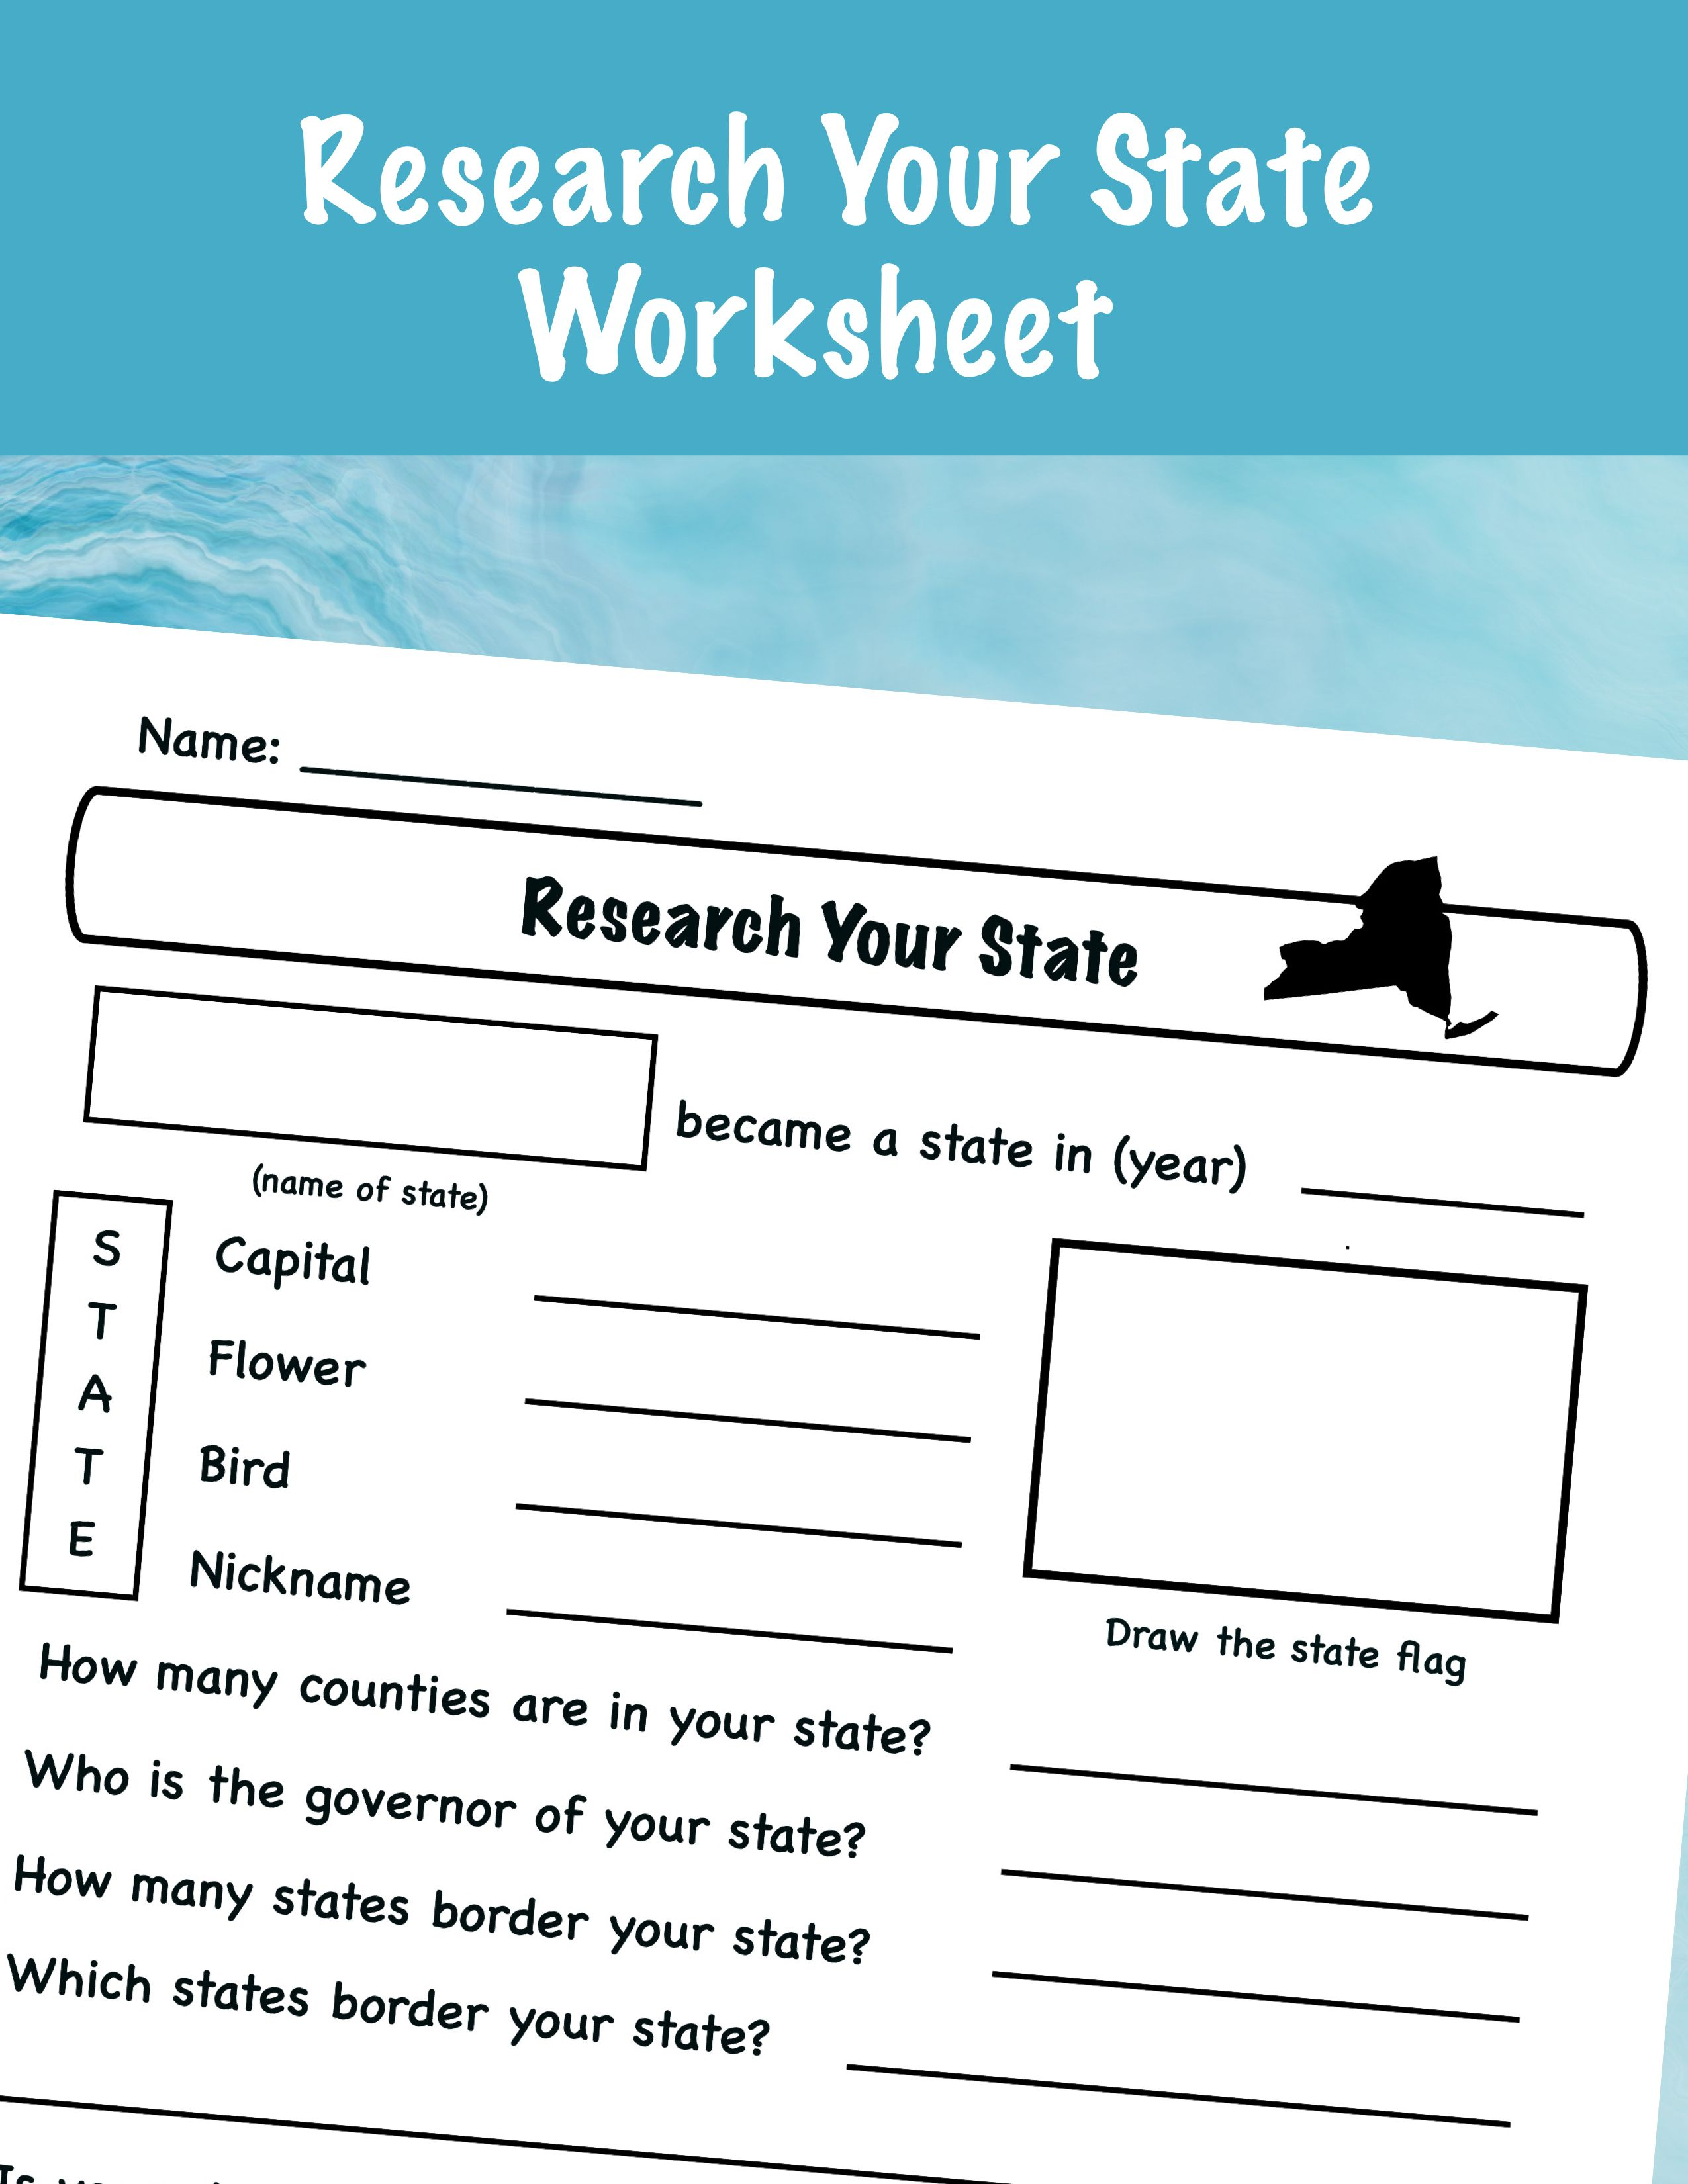 Research Your State Worksheet In